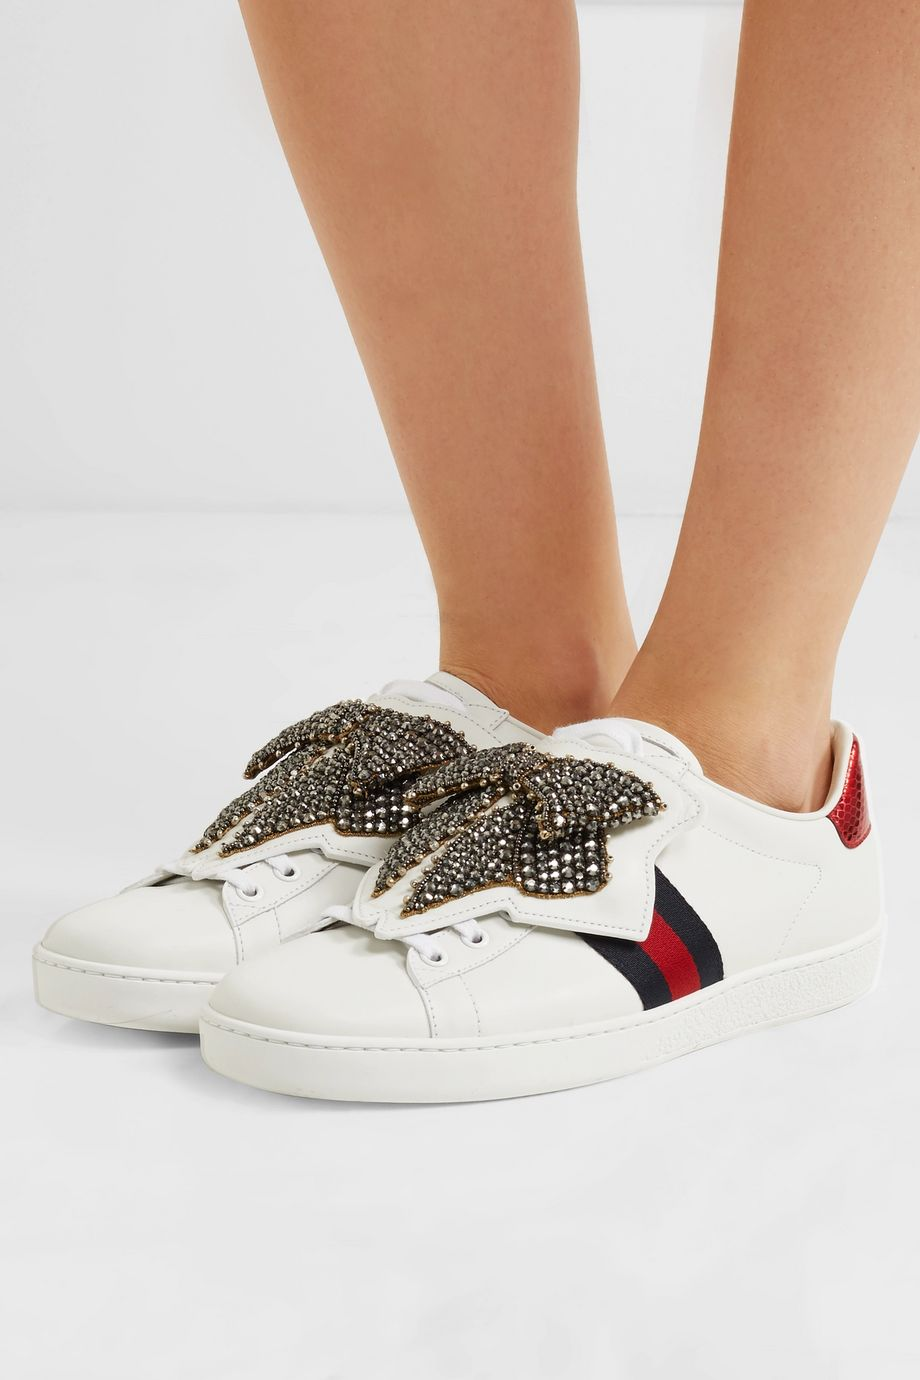 Gucci Ace crystal-embellished watersnake-trimmed leather sneakers